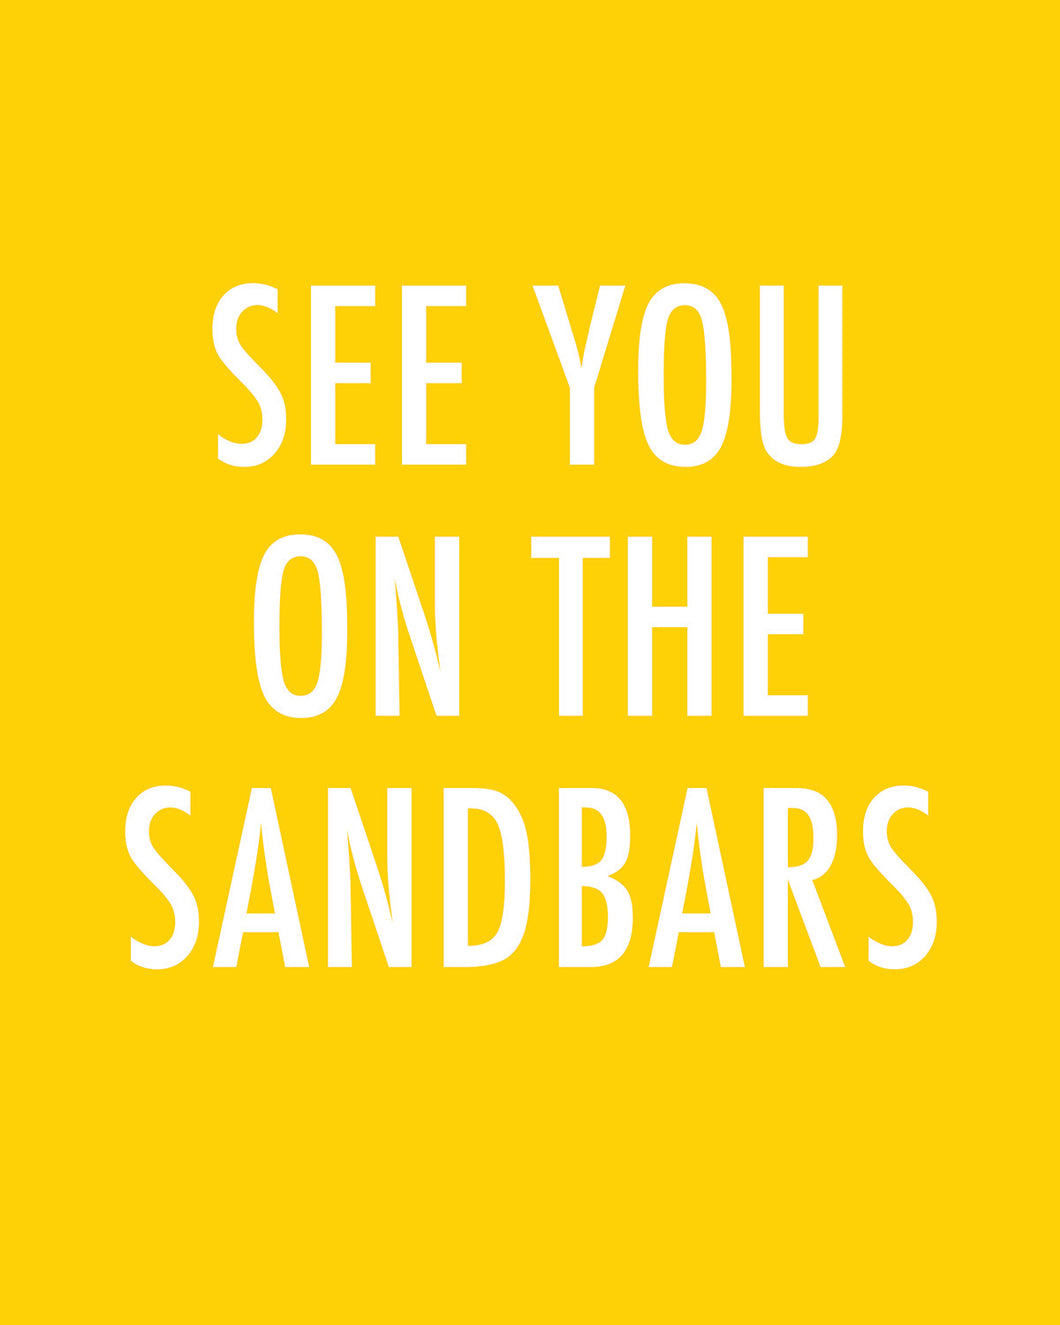 See You on the Sandbars- Color Pop Print